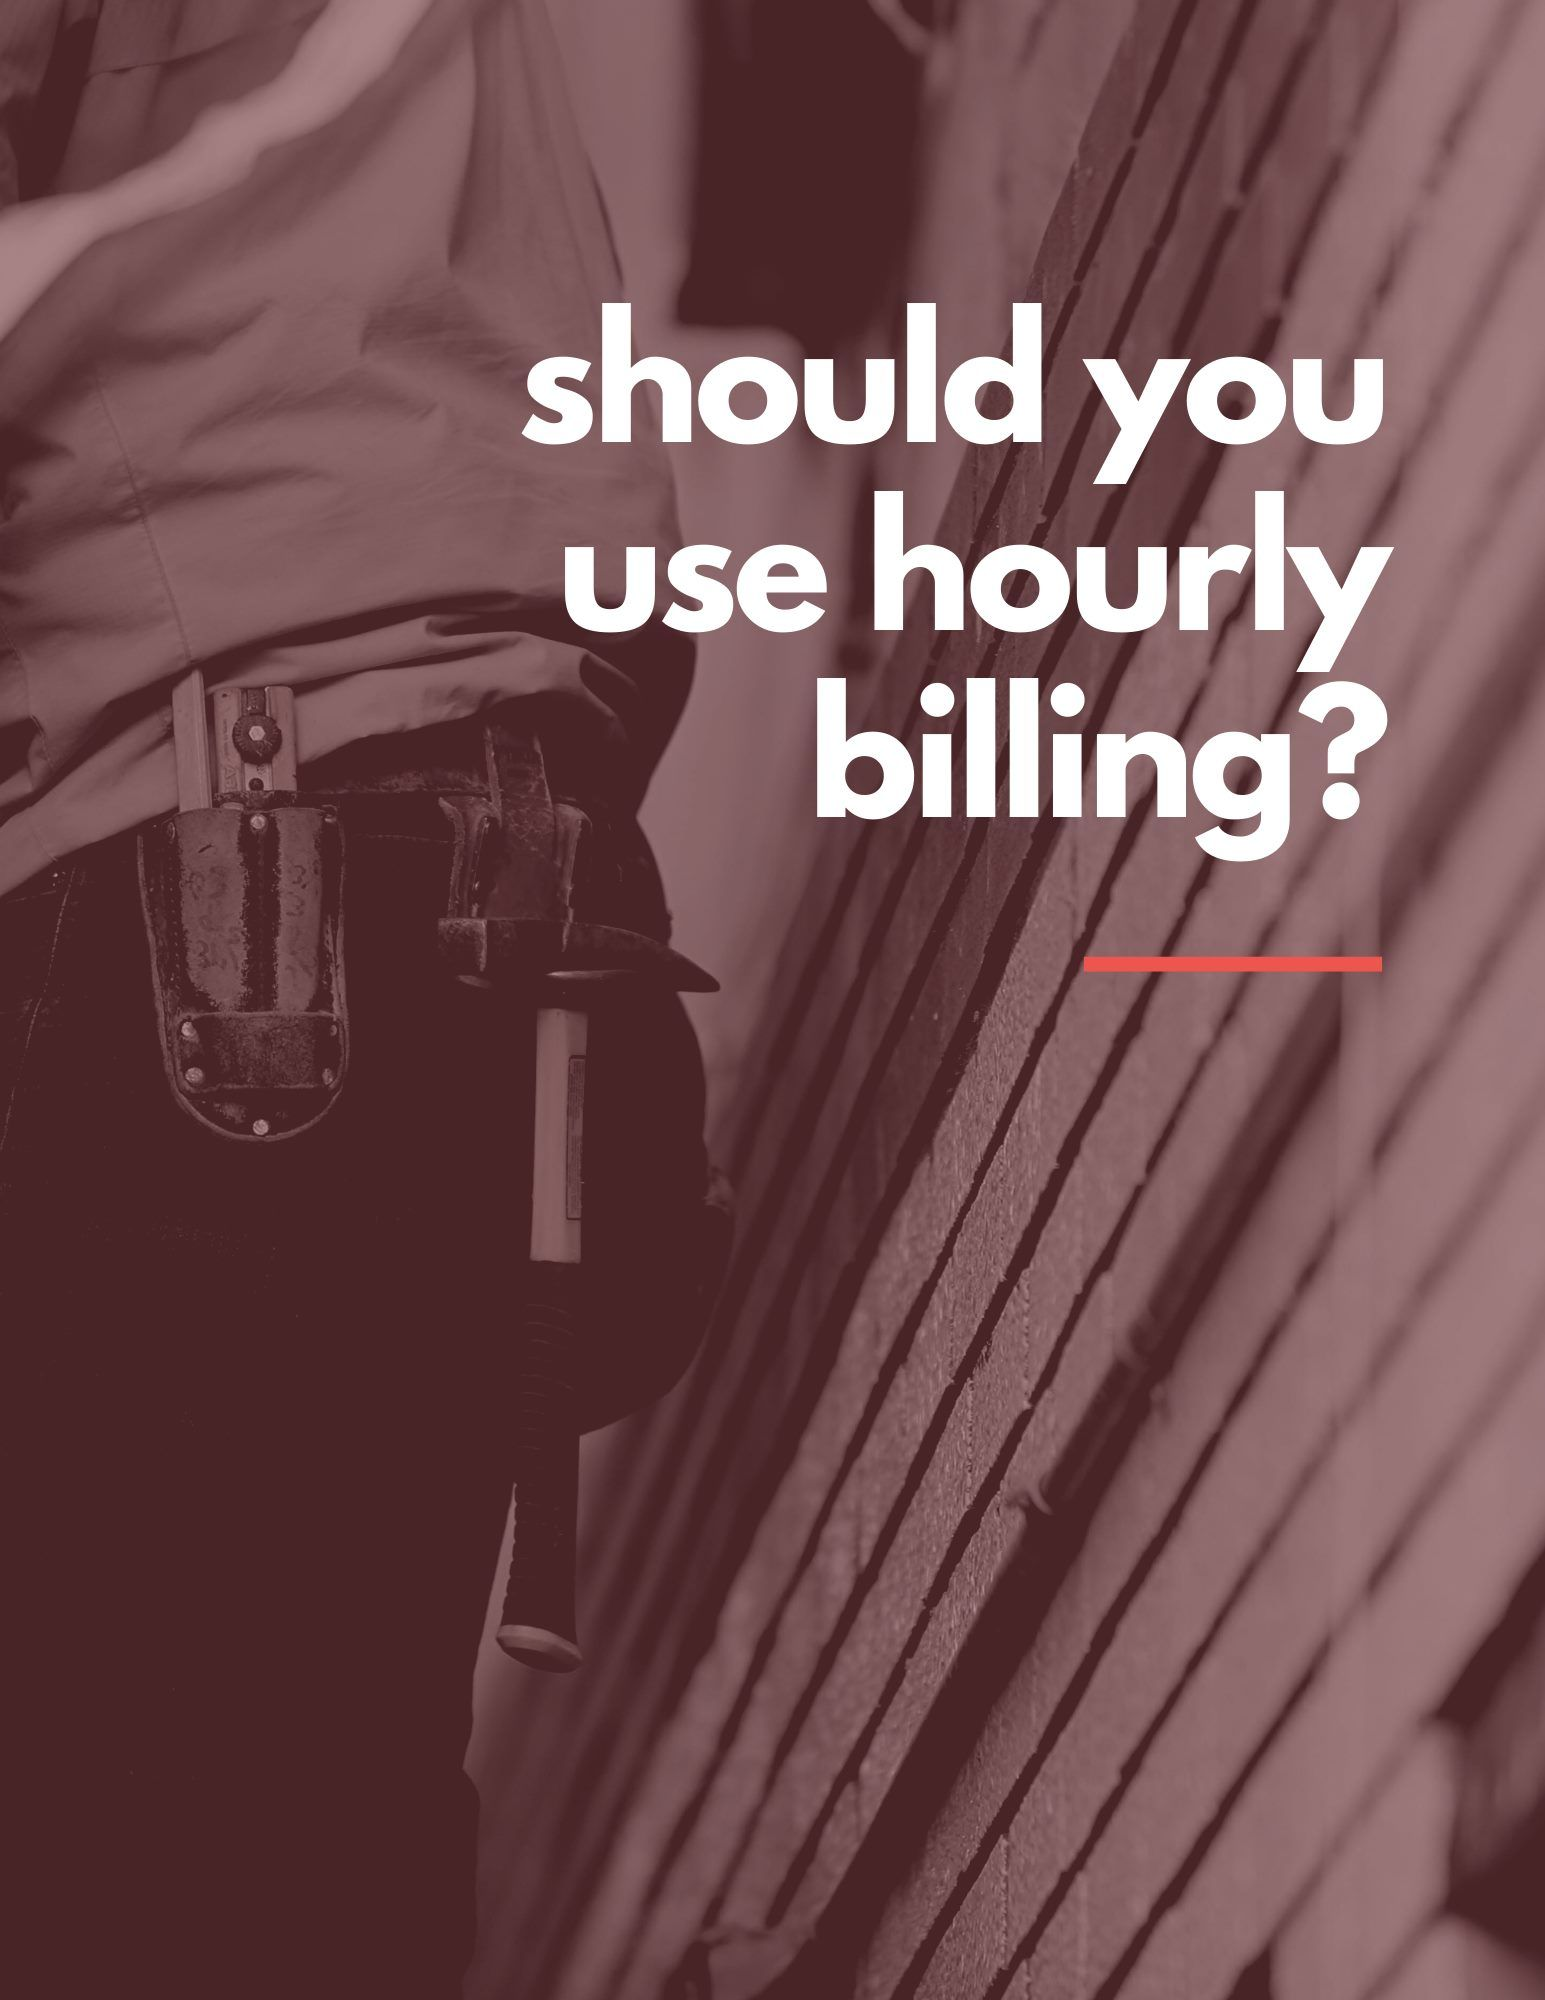 HVAC Business Tips Should You Use Hourly Billing For Your